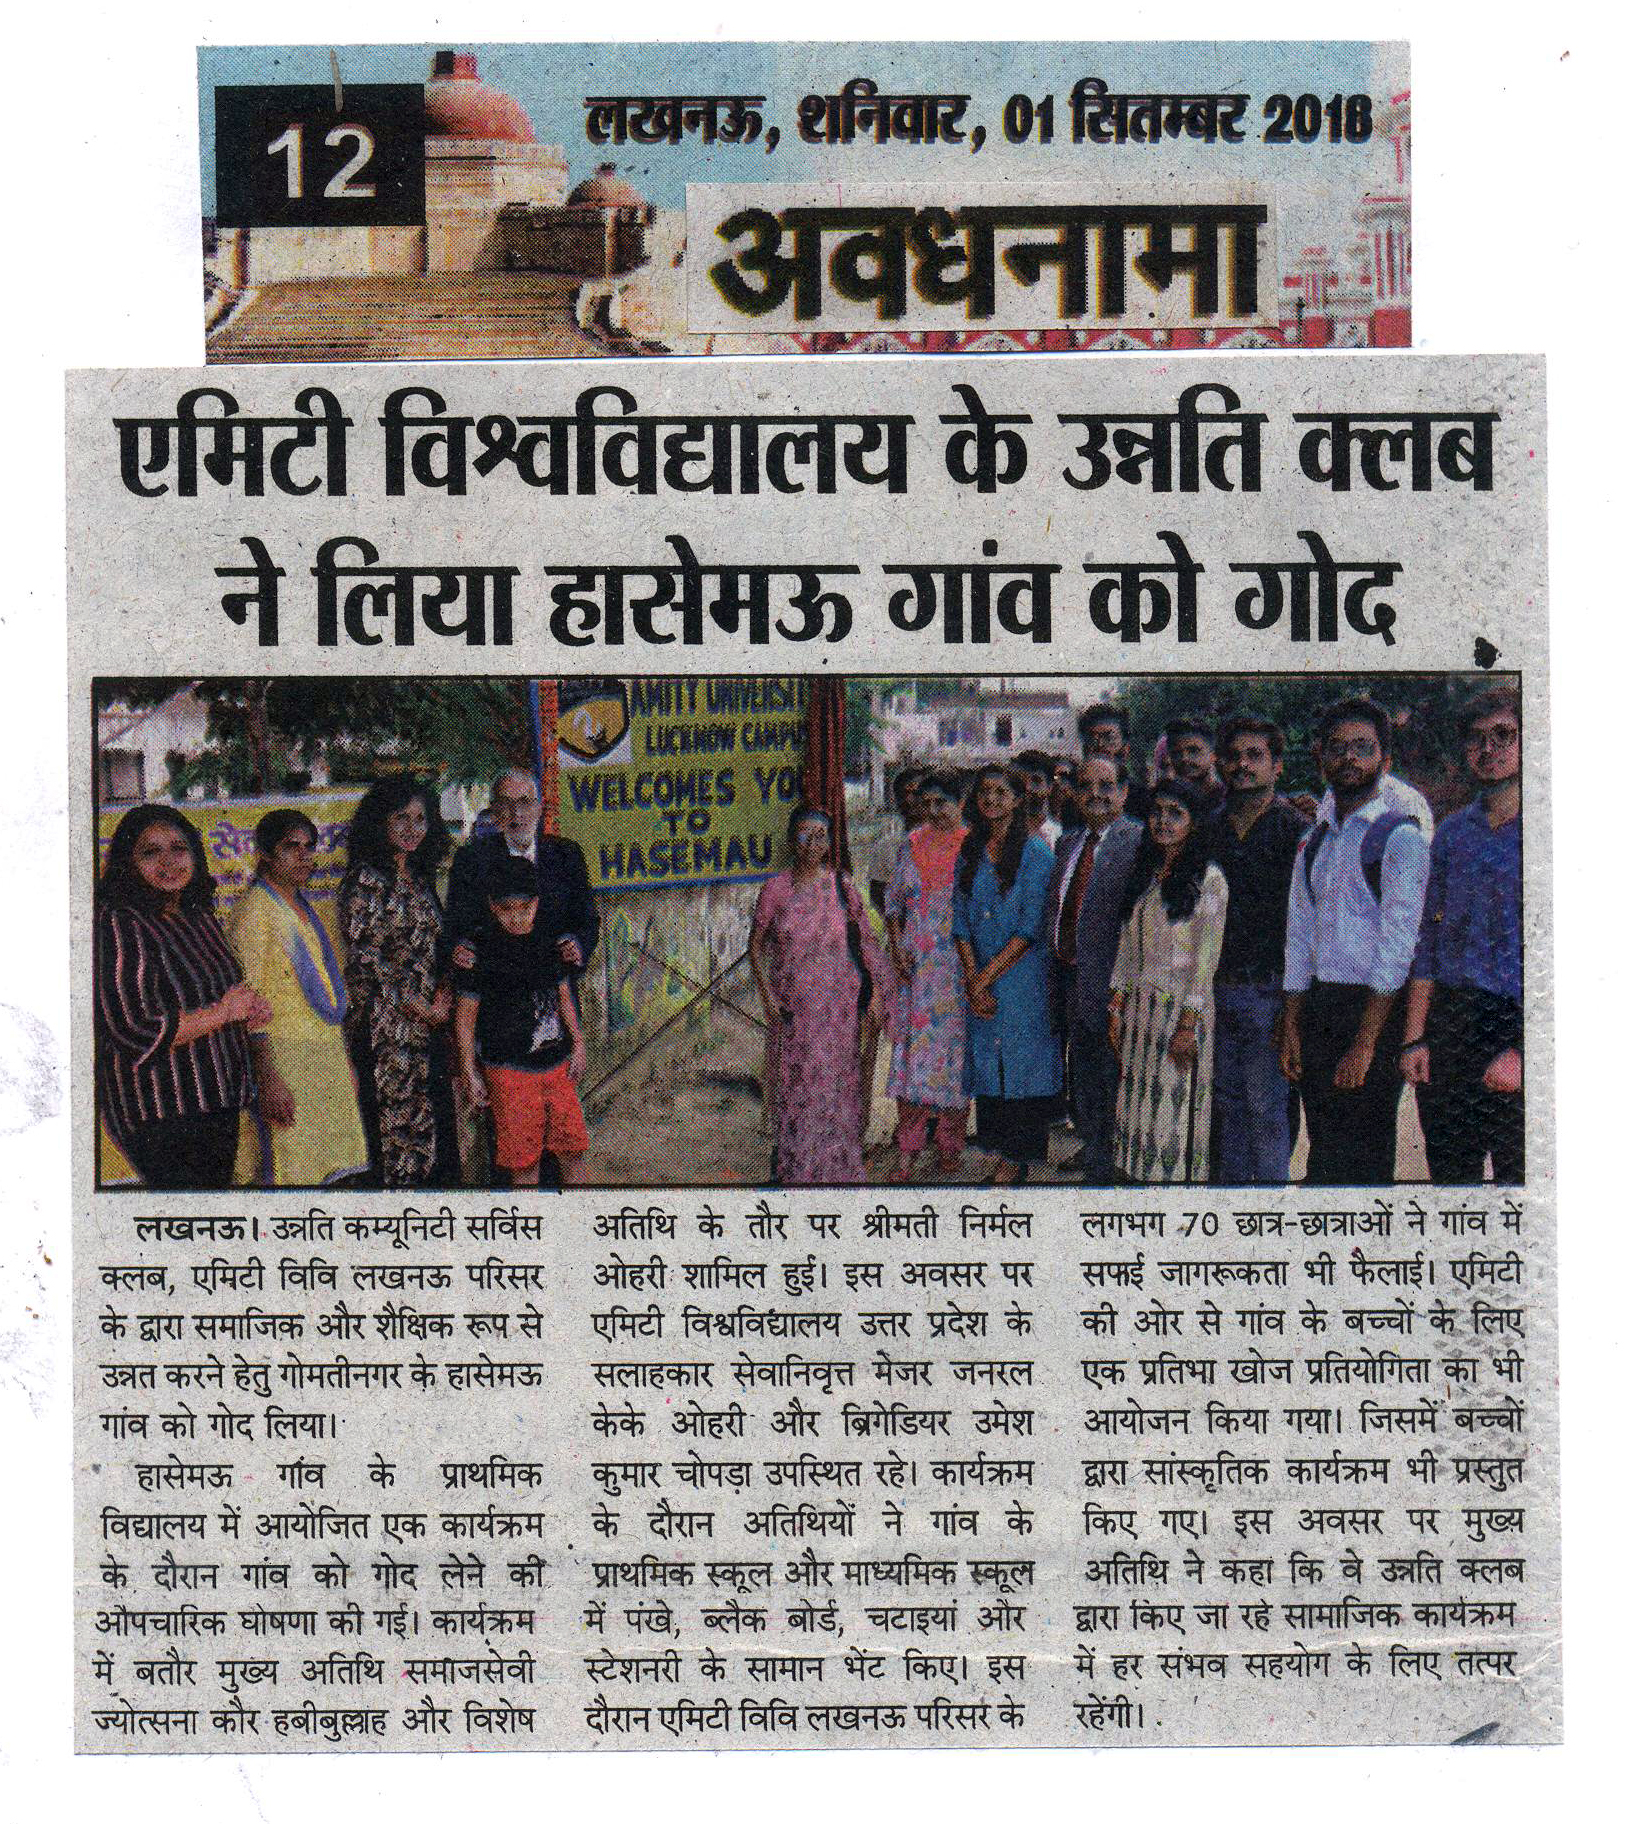 Amity Lucknow adopted Hasemau Village